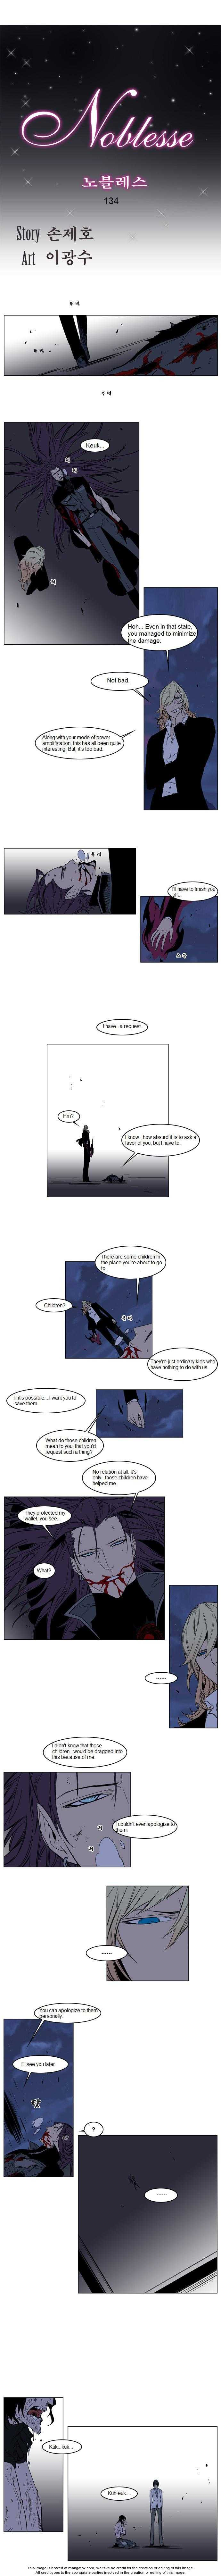 Noblesse 134 Page 2